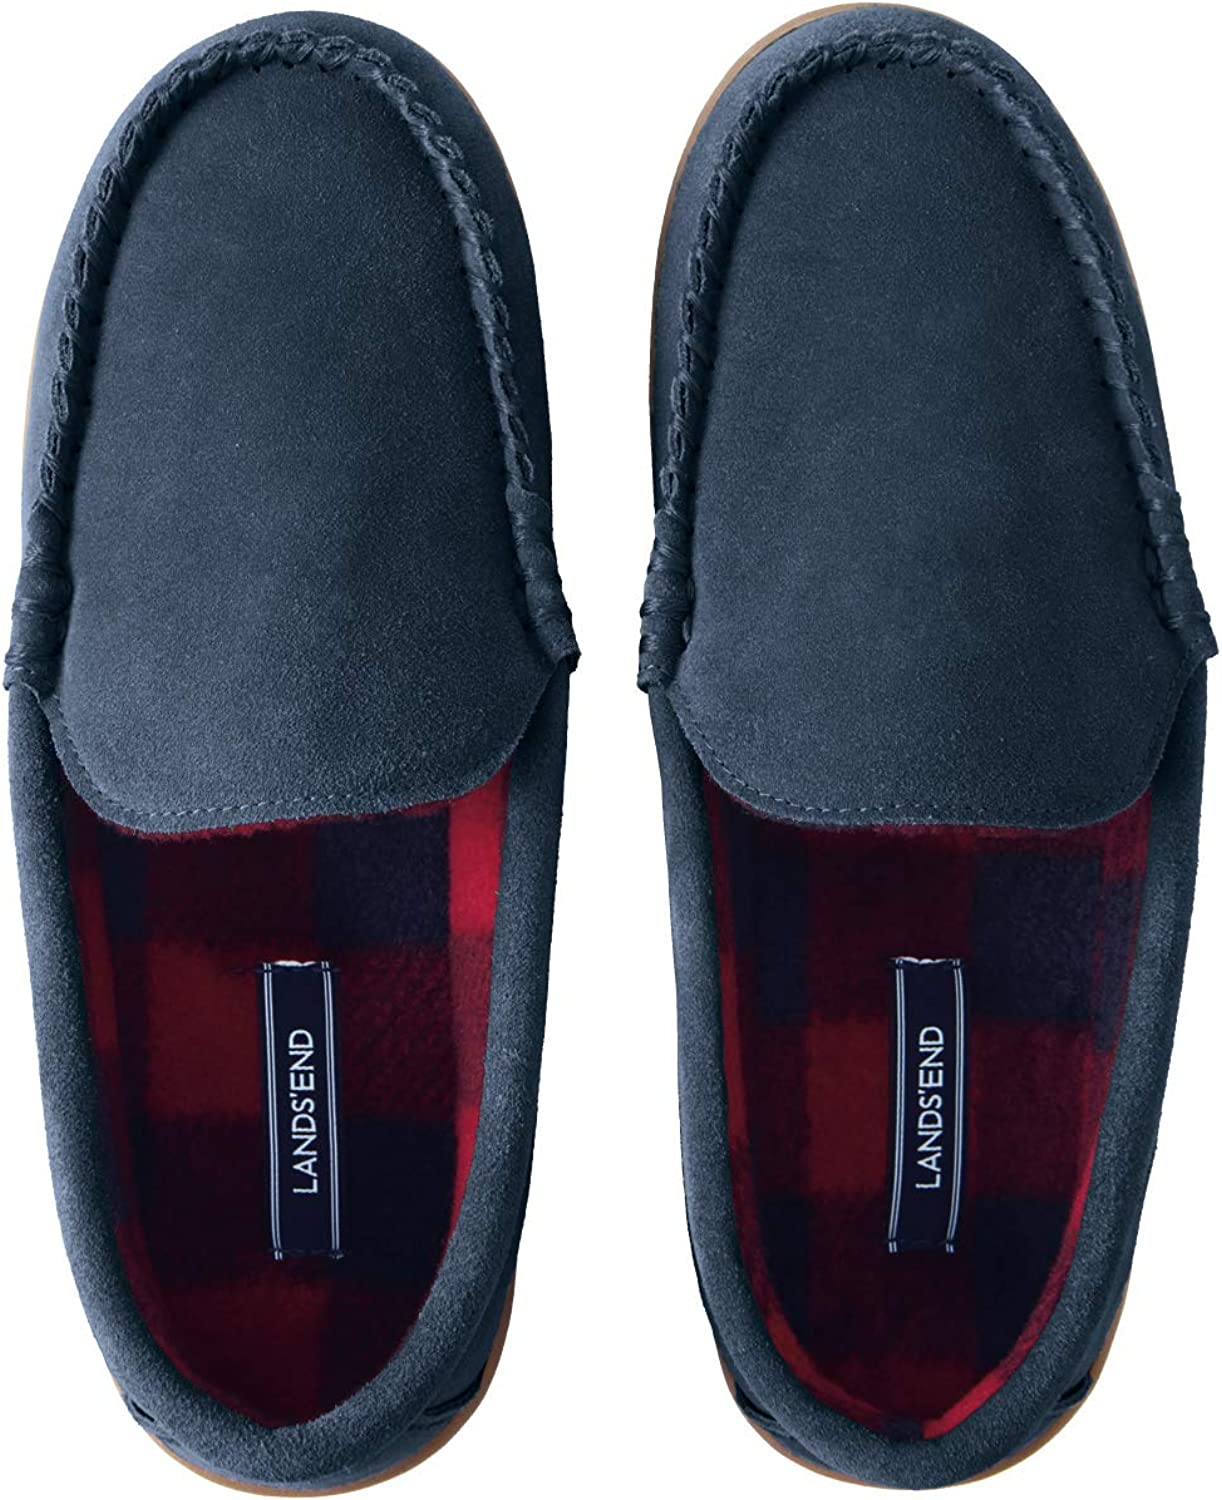 Lands' End Men's Suede Moccasin Slippers with Fleece Lining